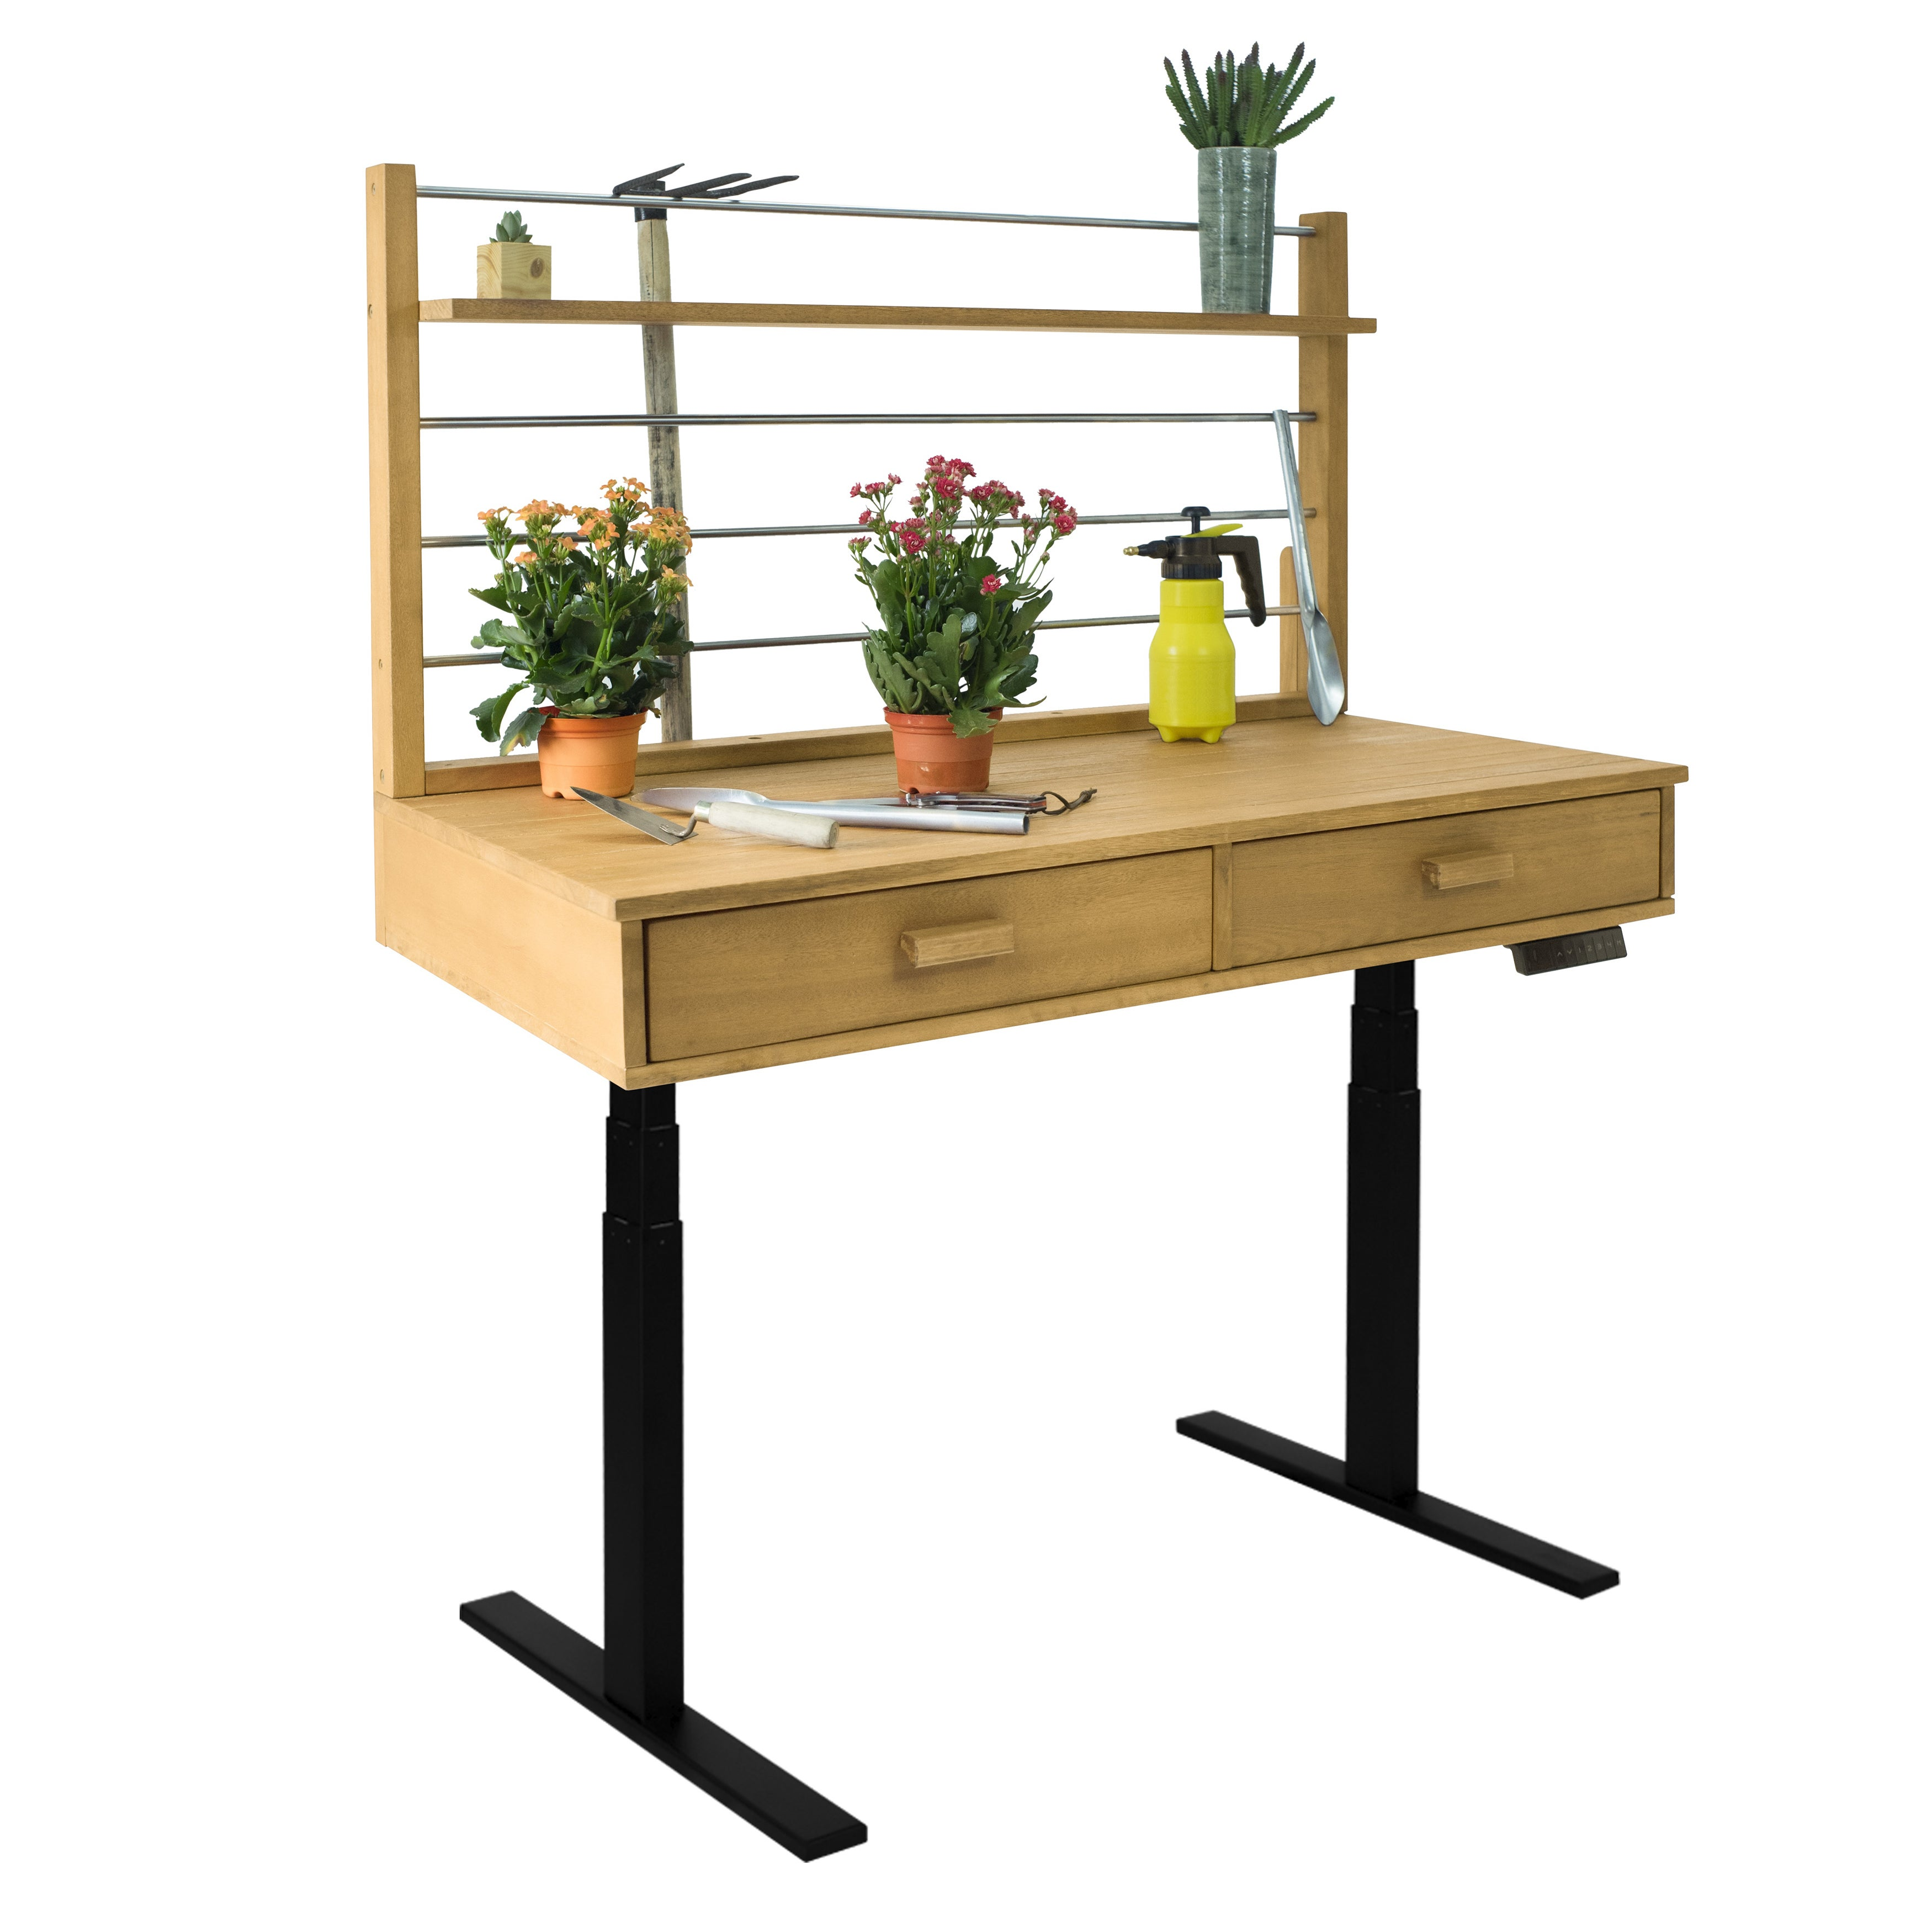 Sit to Stand Adjustable Height Potting Bench in Sand-splashed